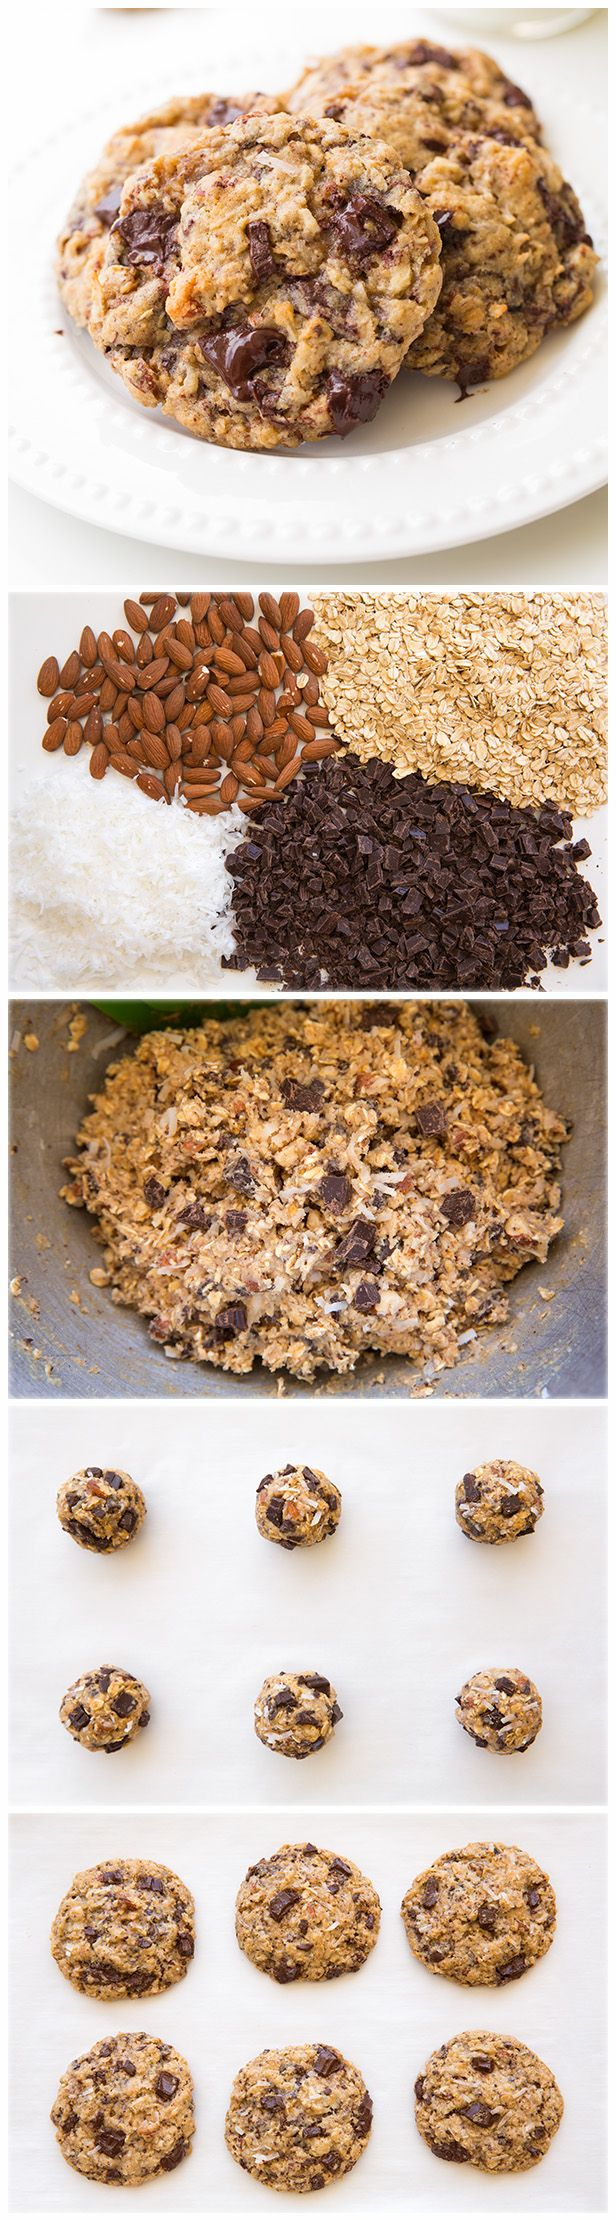 Oatmeal Coconut Almond Chocolate Chunk Cookies - AMAZING to say the ...